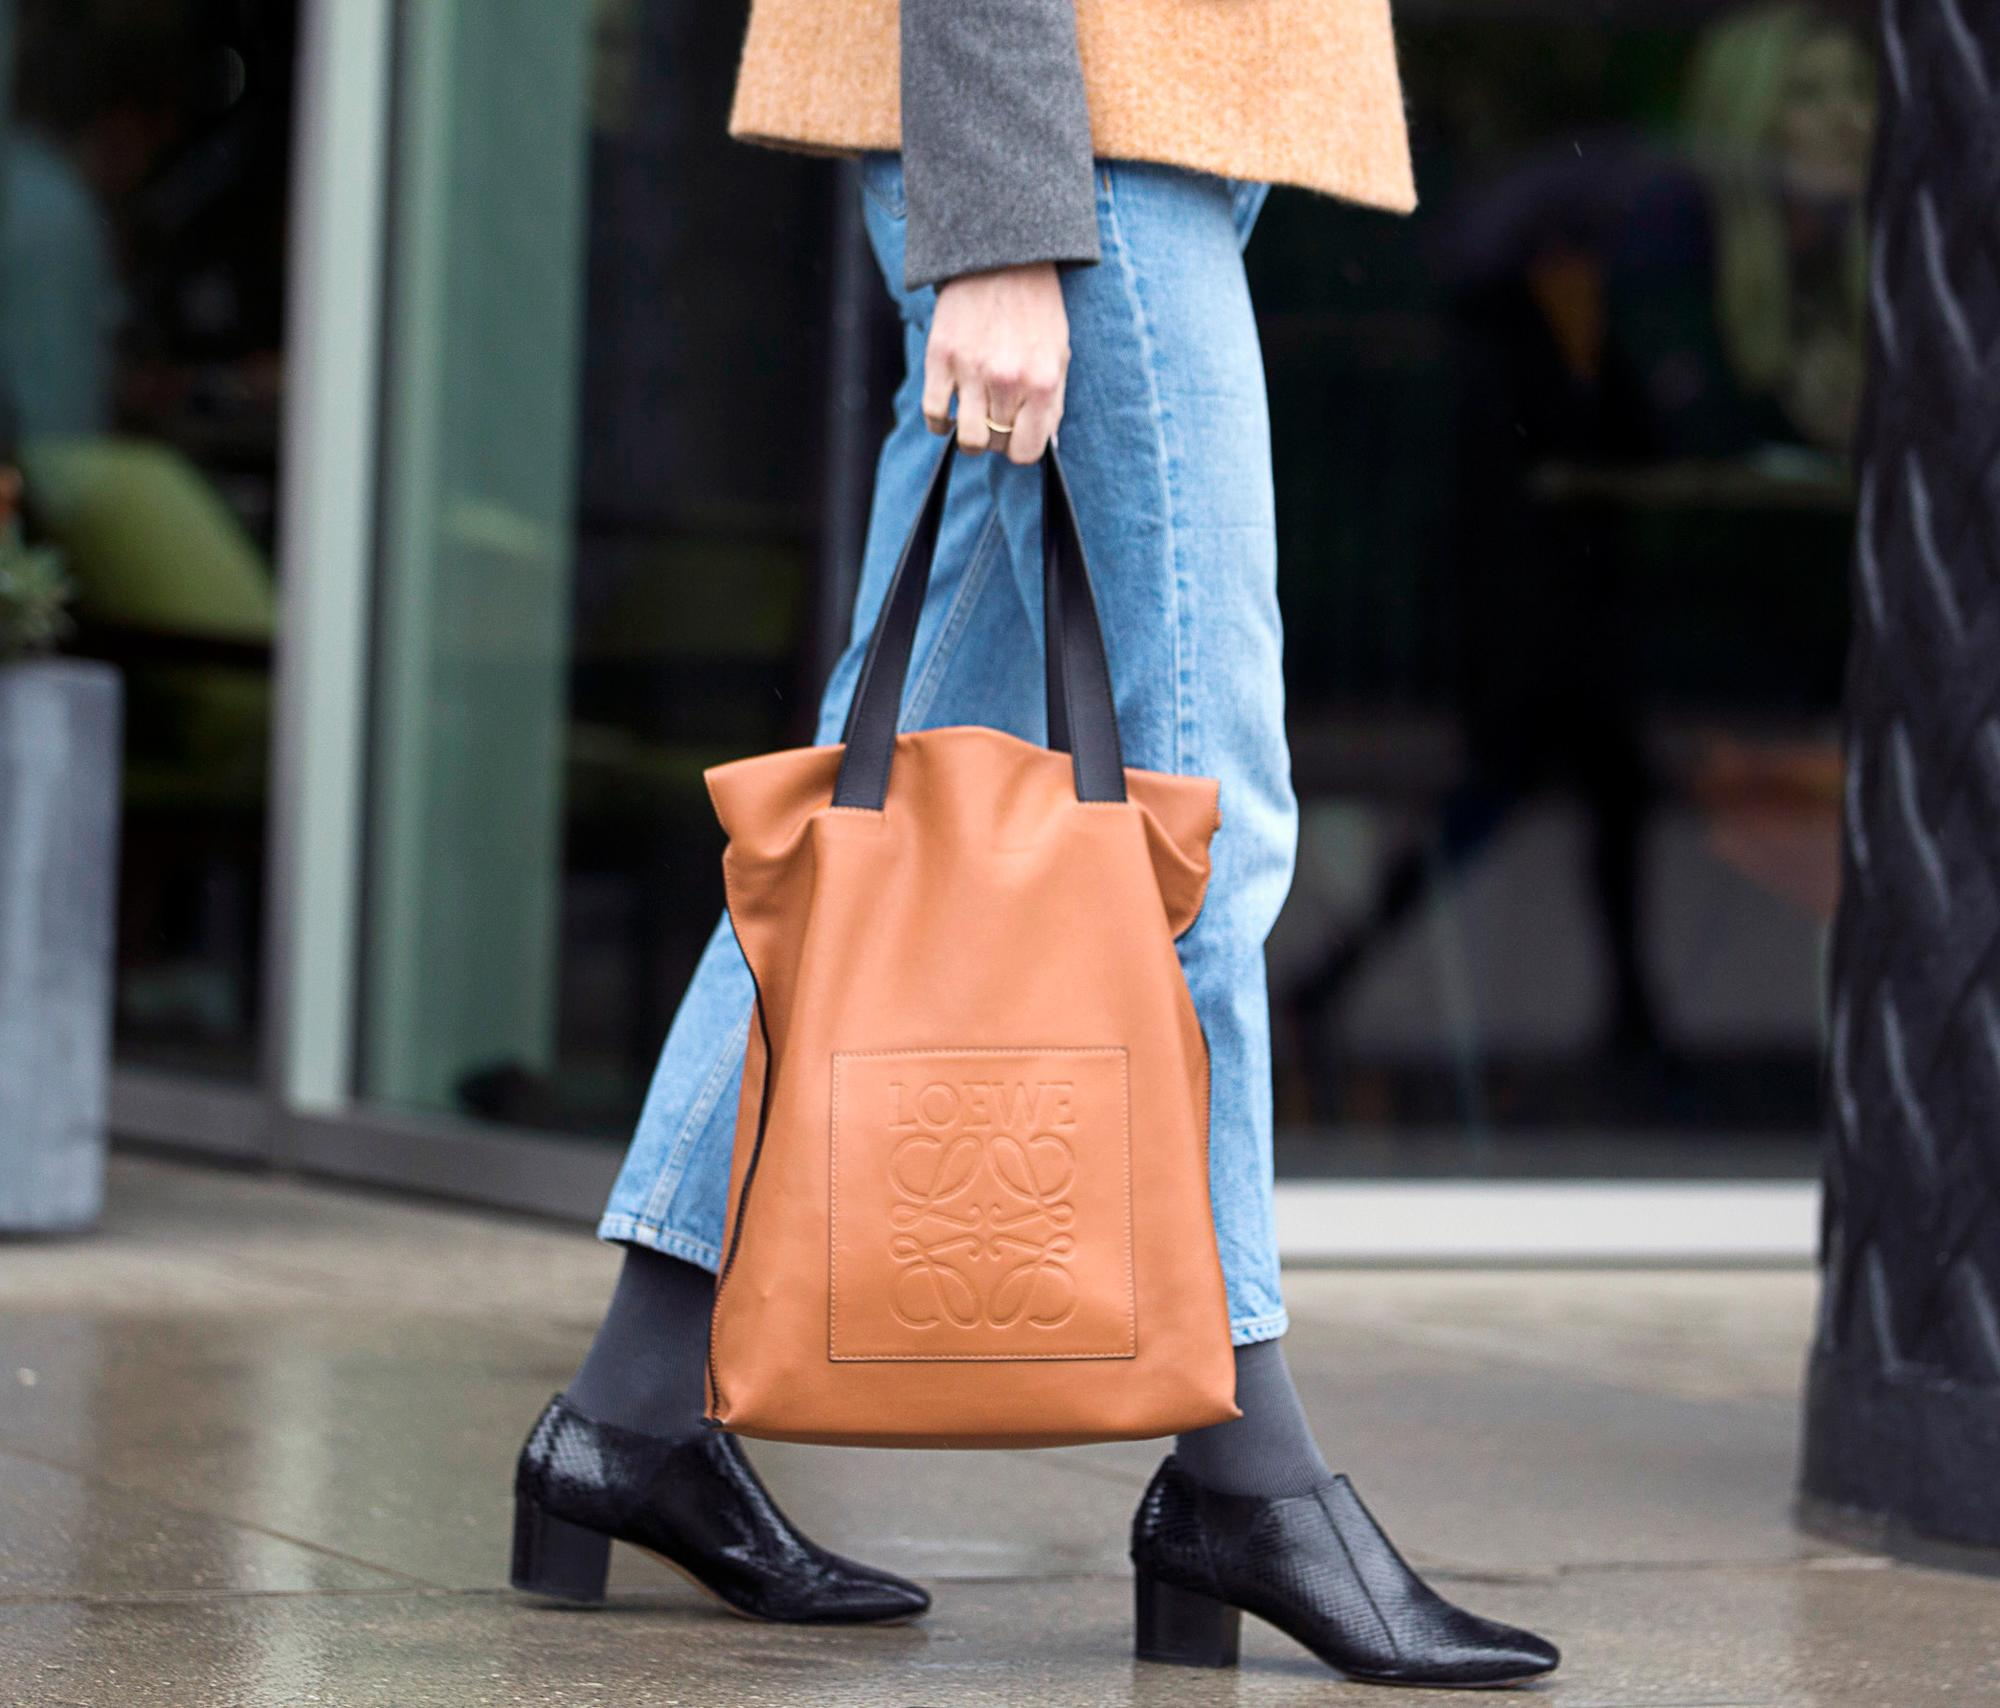 The College Girls' Guide To Chic Backpack Alternatives